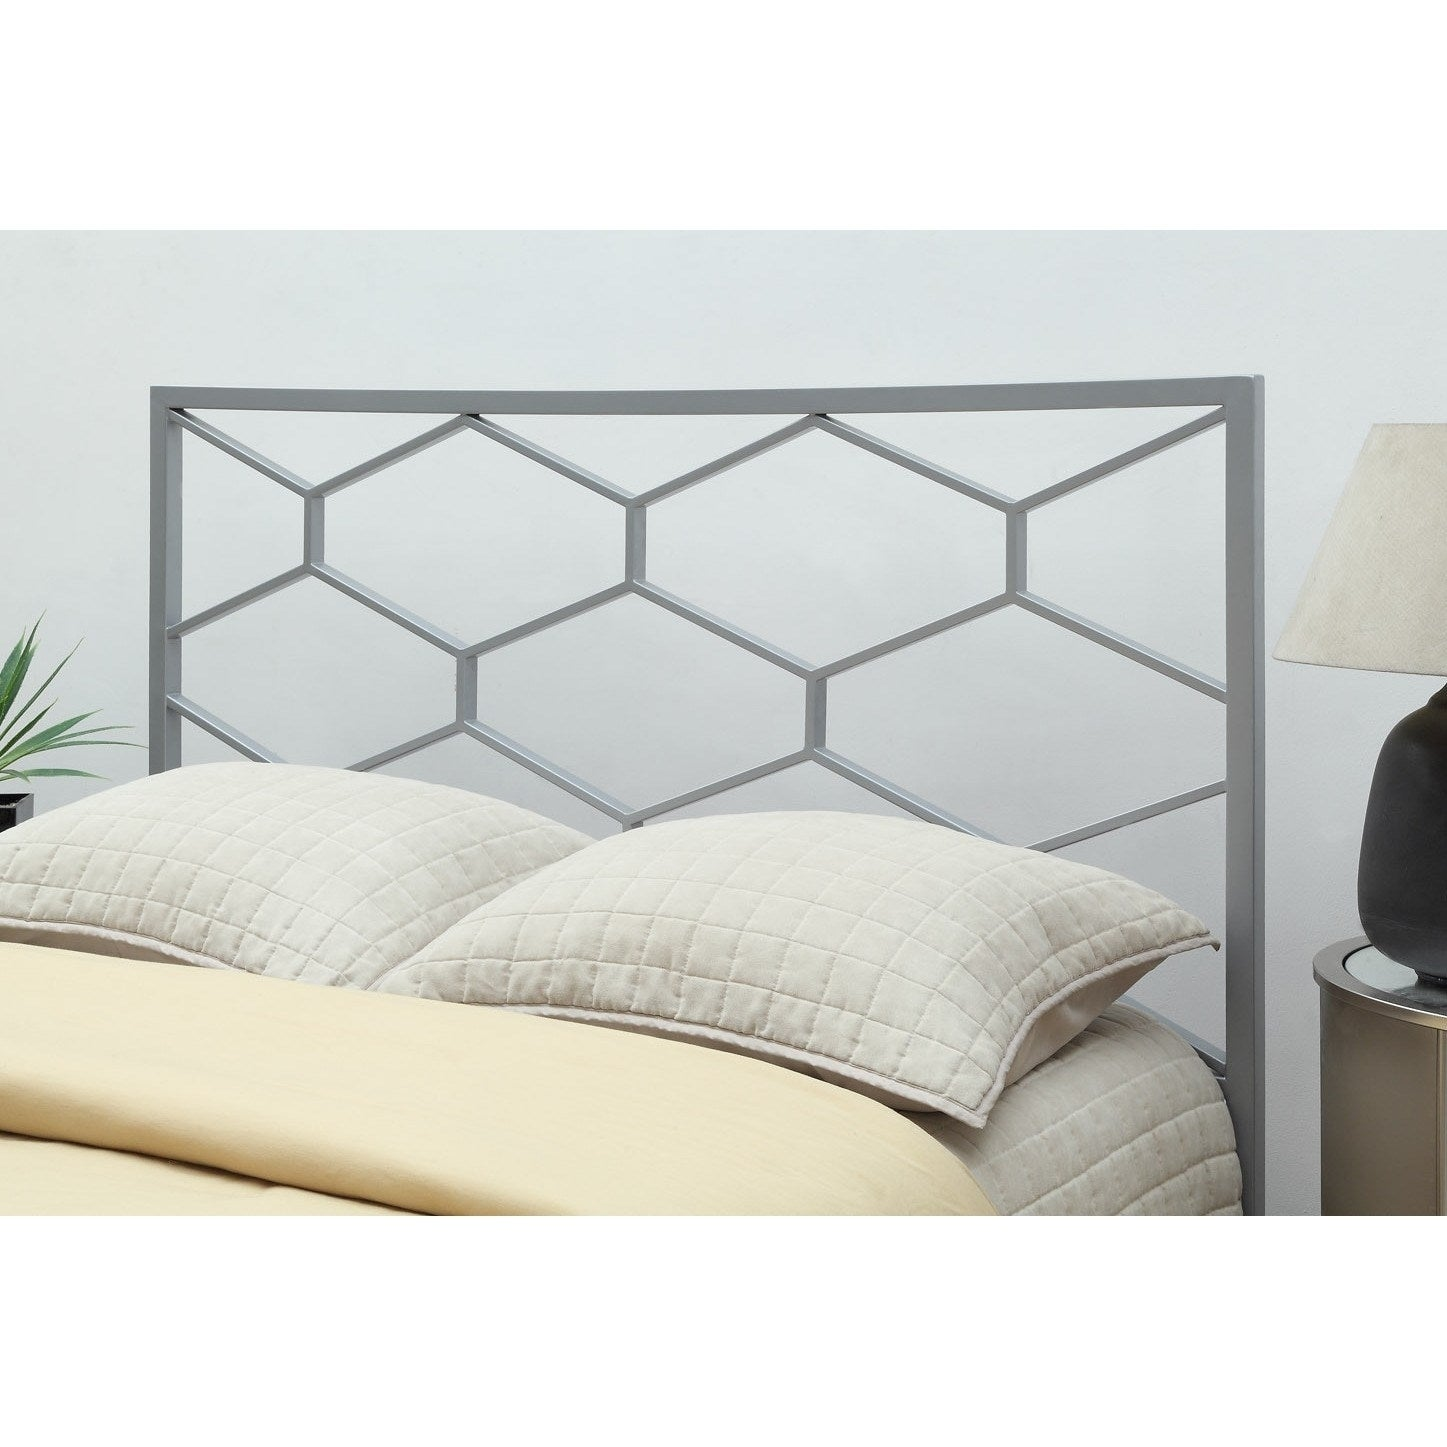 Silver Queen/ Full-Size Headboard/ Footboard at Sears.com